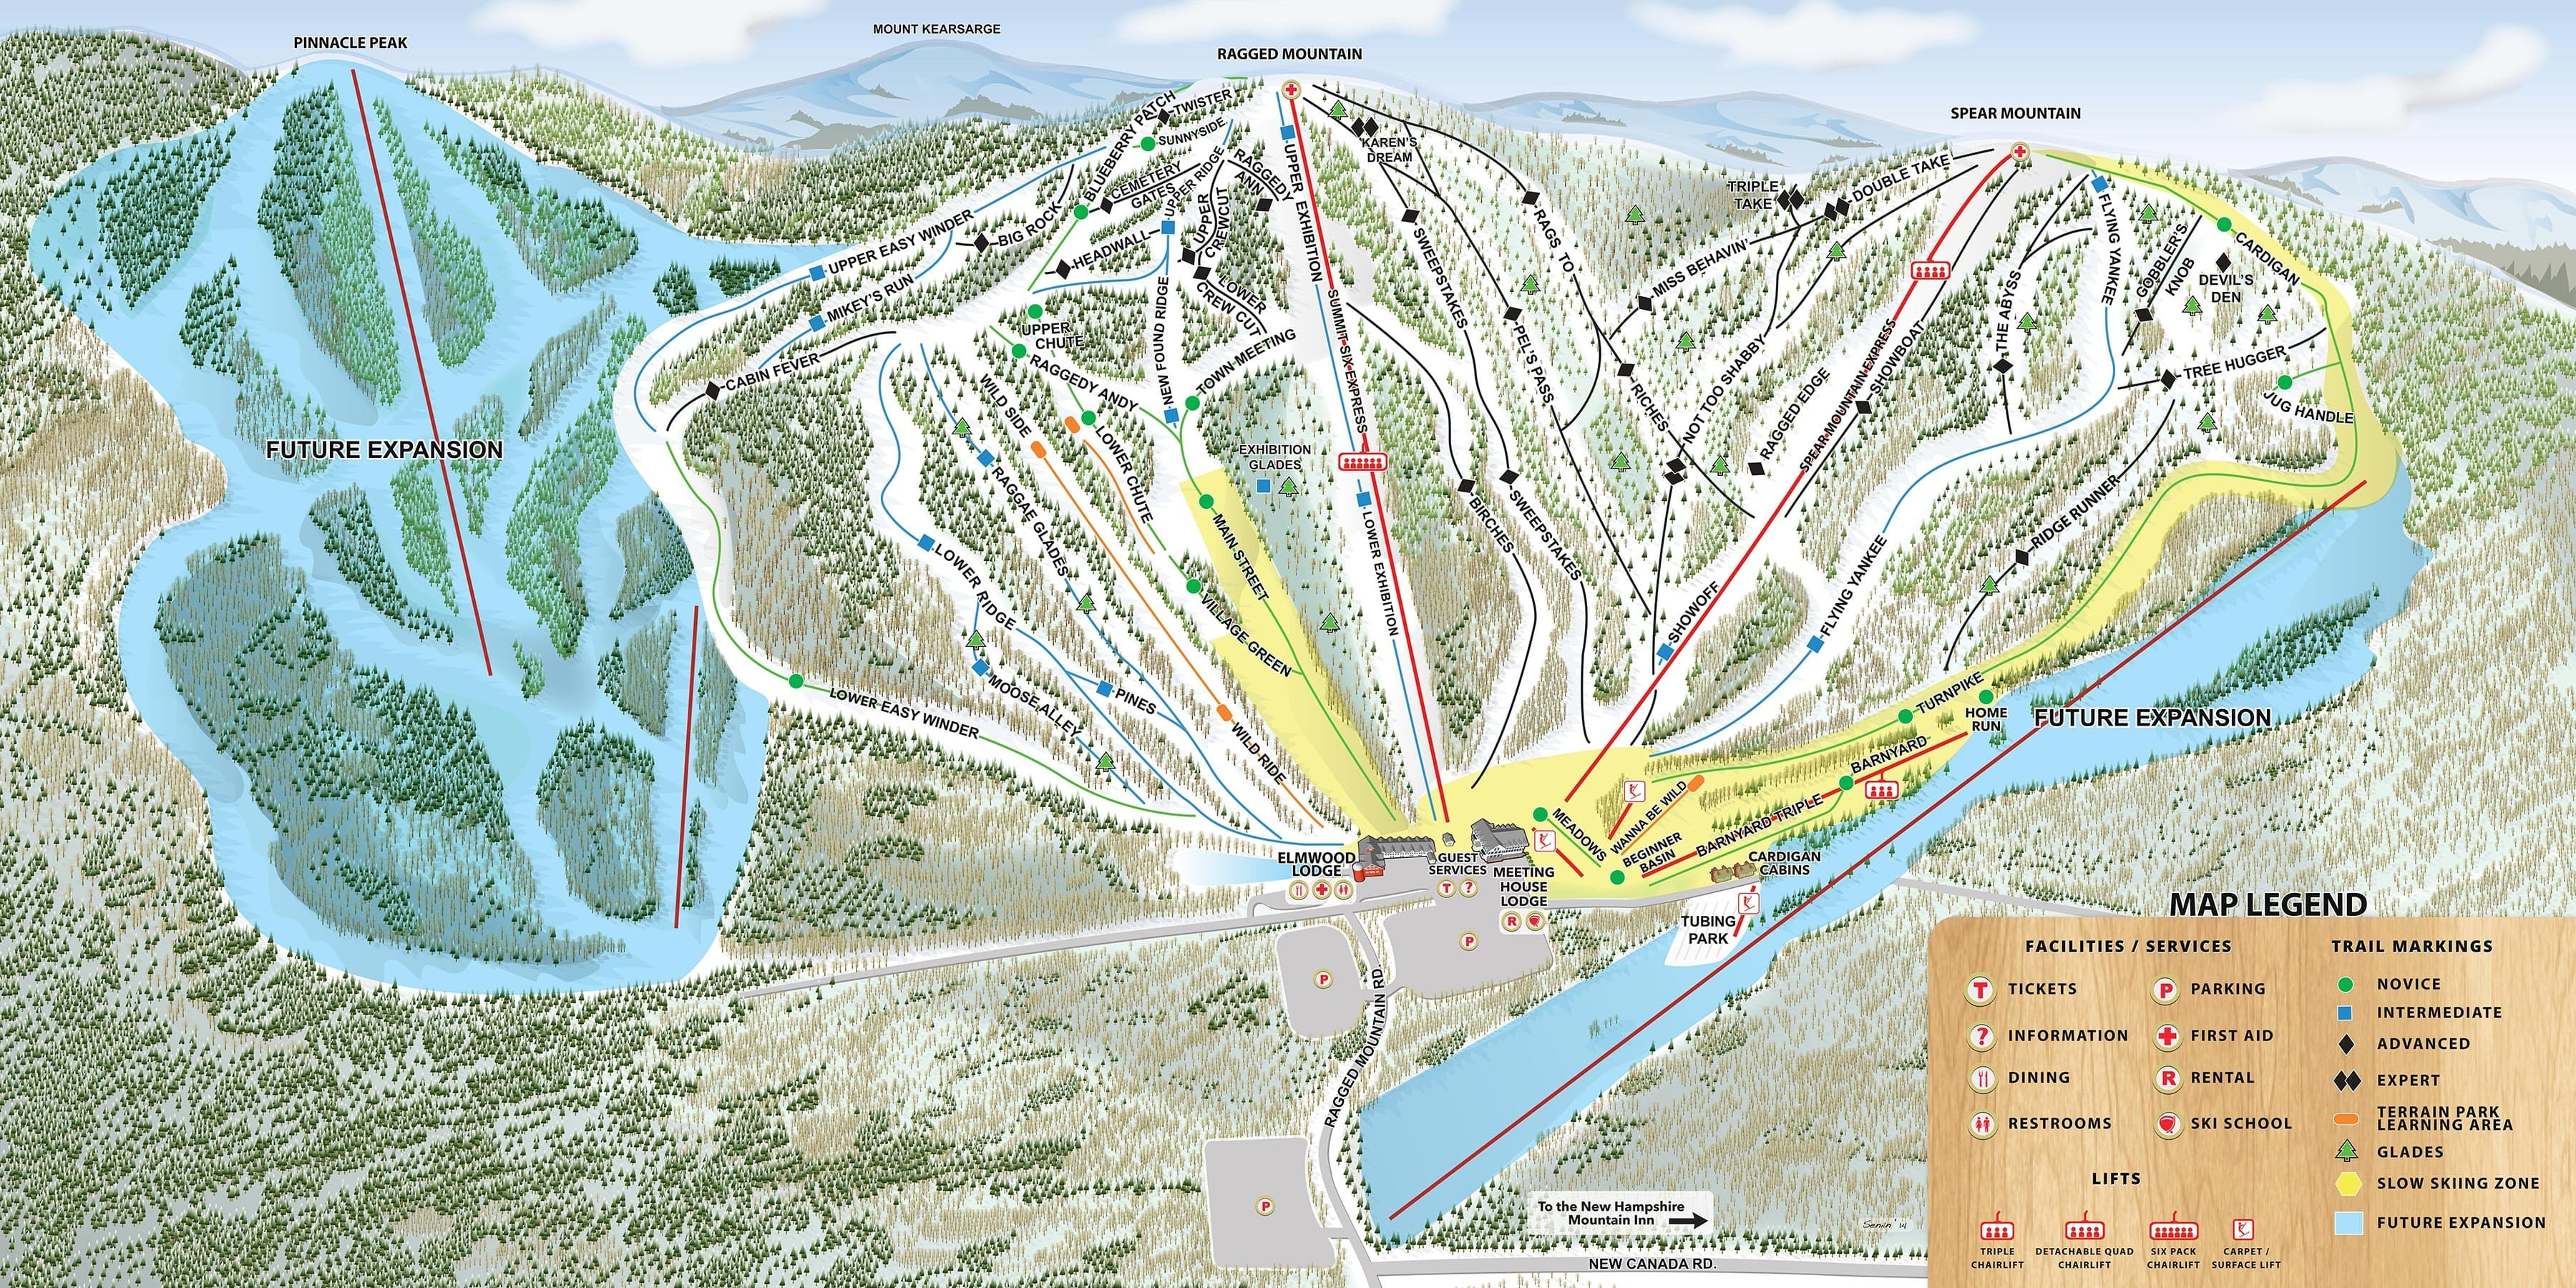 Ragged Mountain Resort Piste / Trail Map